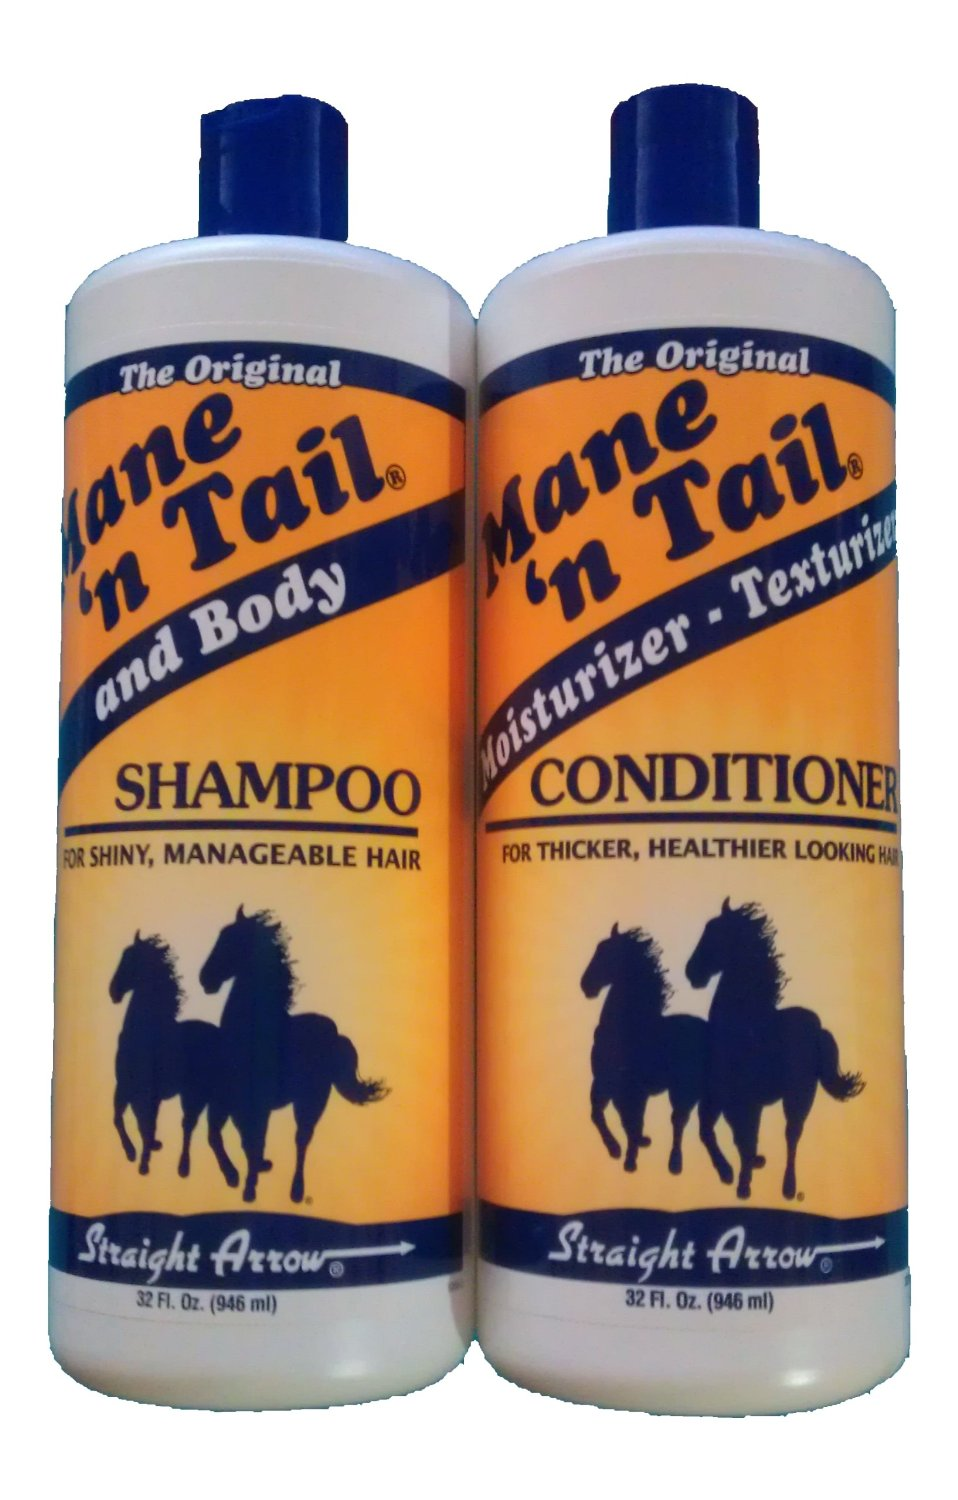 horse shampoo can be used on humans too with good results